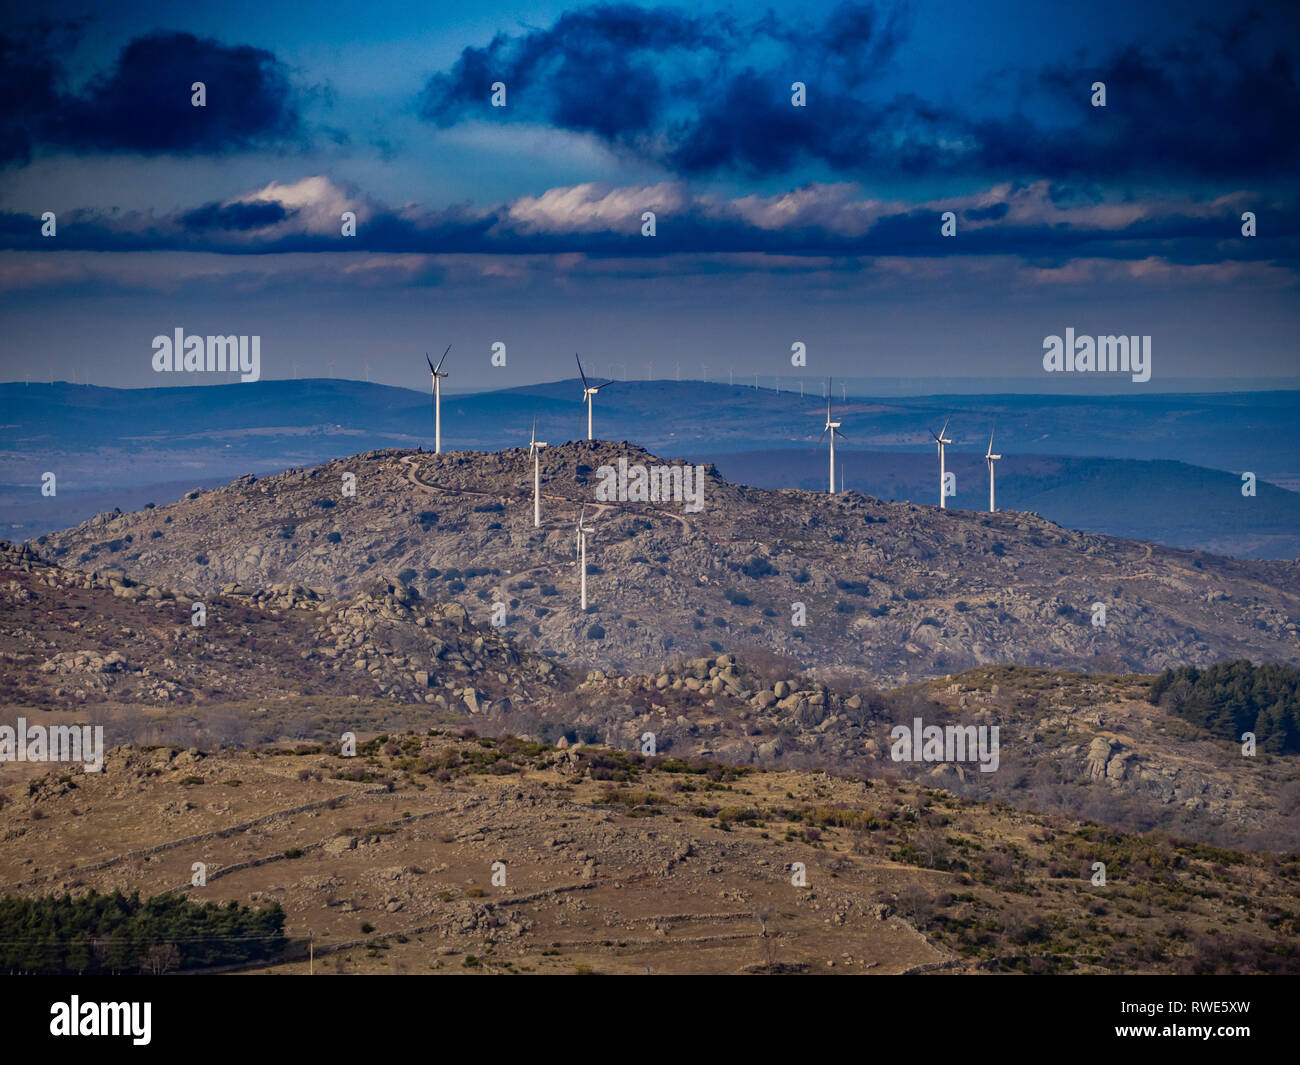 Mountain landscape with wind turbines in Salamanca. Concept of renewable energy Stock Photo